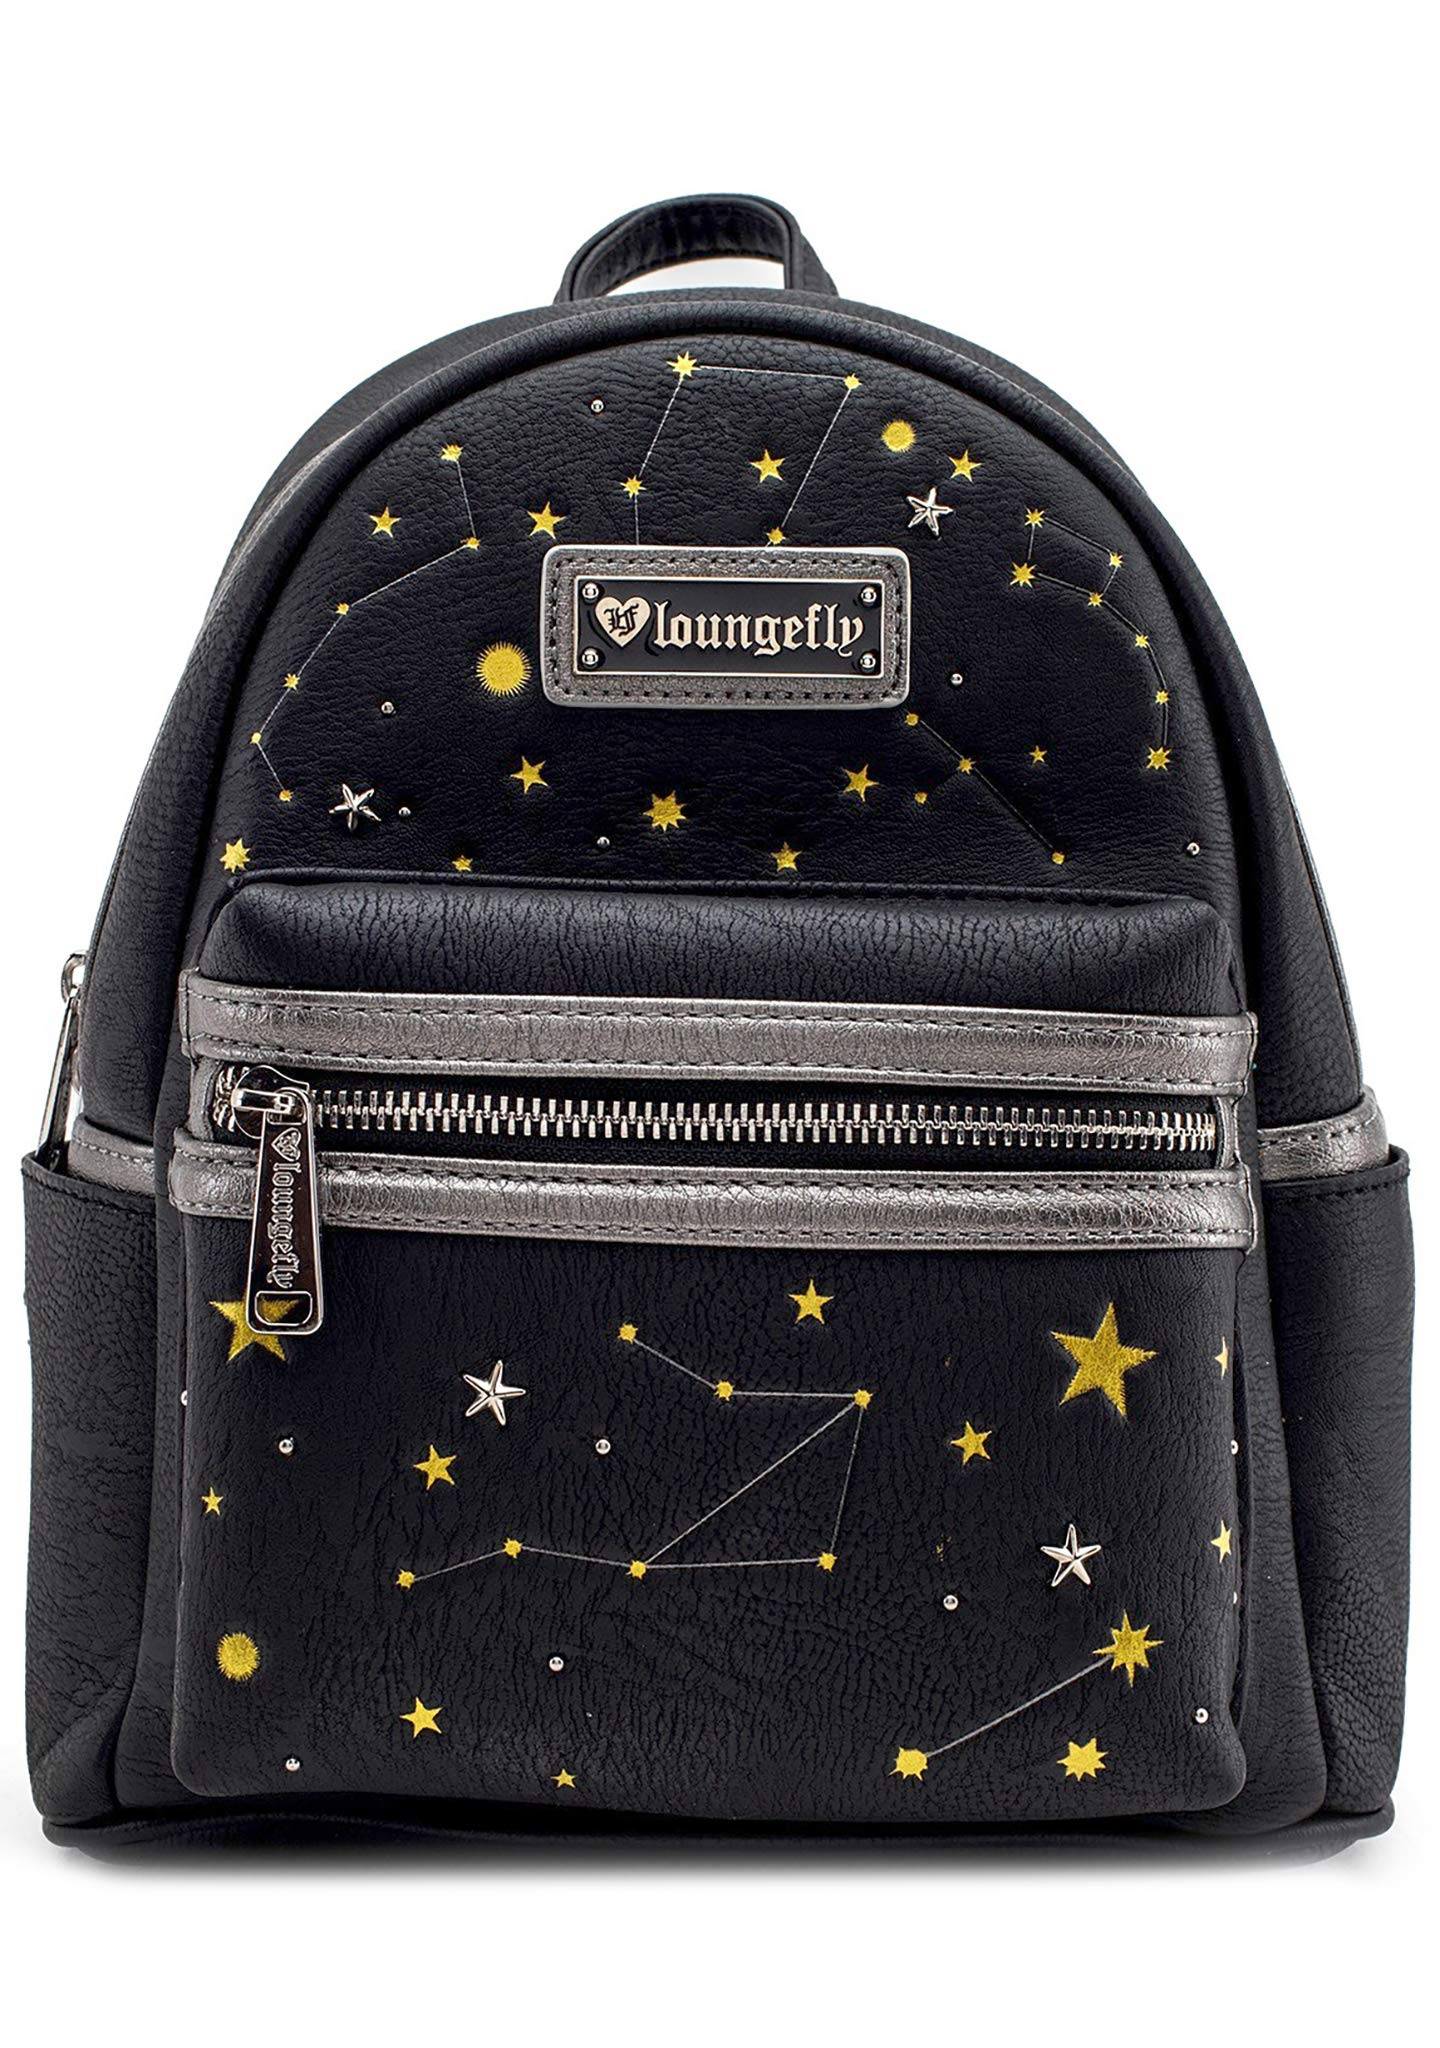 cef56425499e Loungefly CELESTIAL Faux Leather MINI BACKPACK in Black - Travel